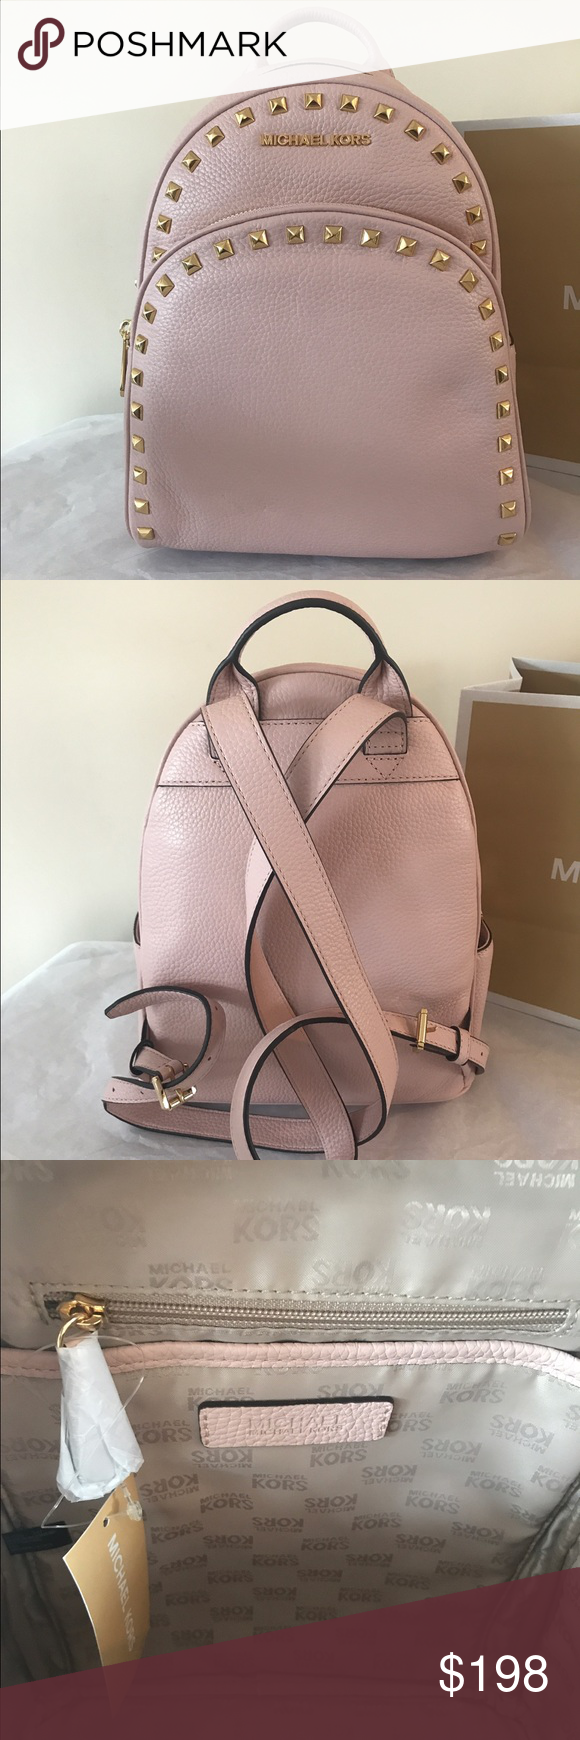 17055578ca11 Michael Kors Abbey Md Frame Out Stud Backpack New with tag Michael Kors  Abbey Medium Frame